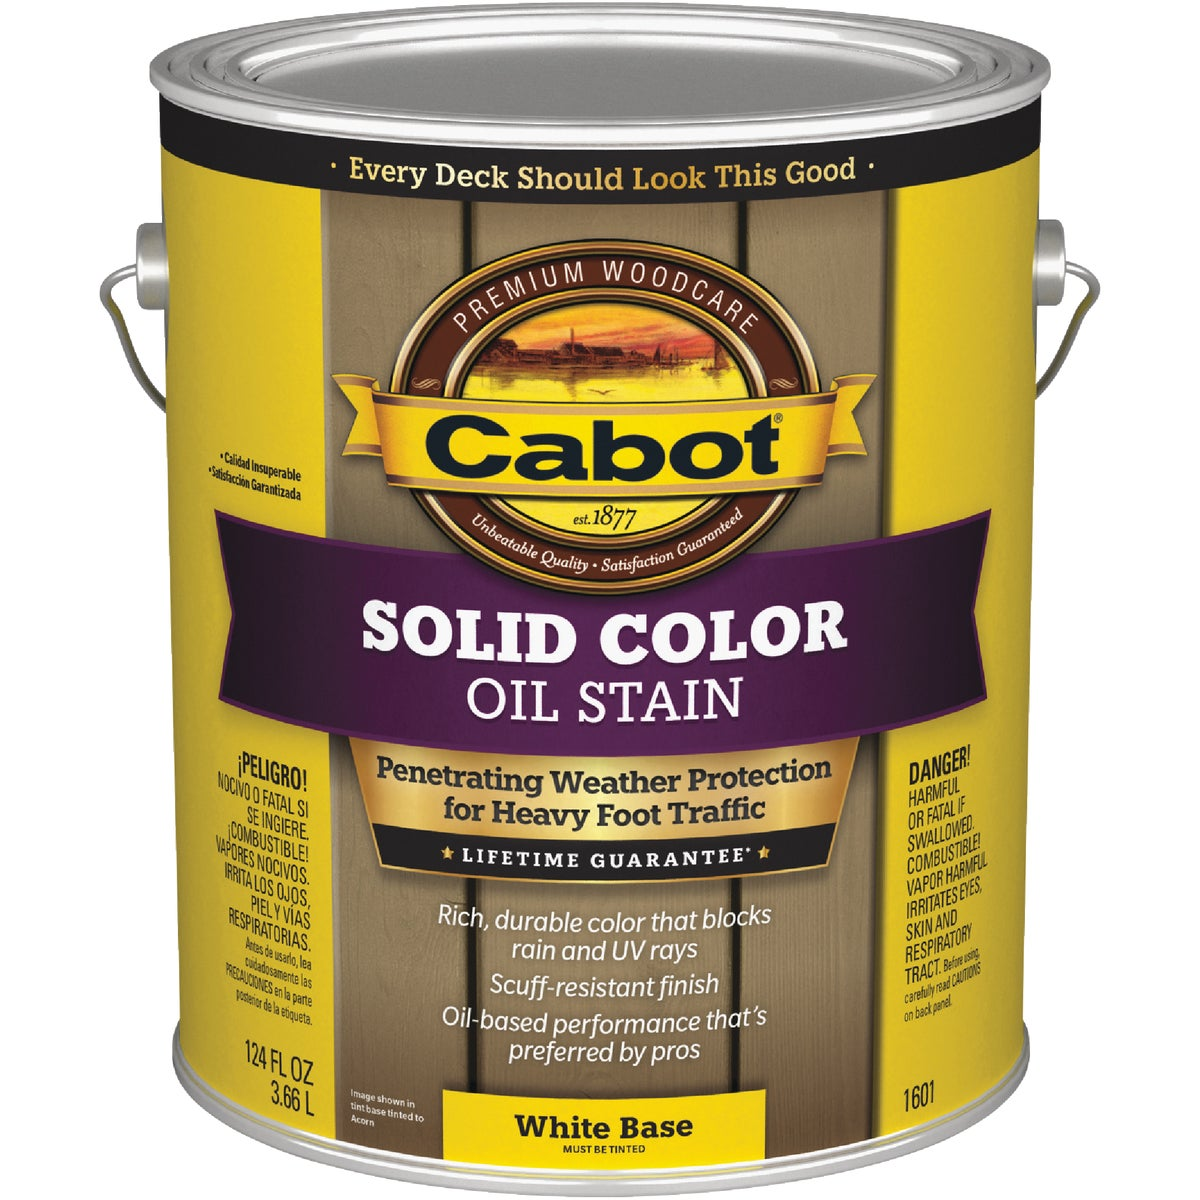 WHT BS SOLID DECK STAIN - 140.0001601.007 by Valspar Corp